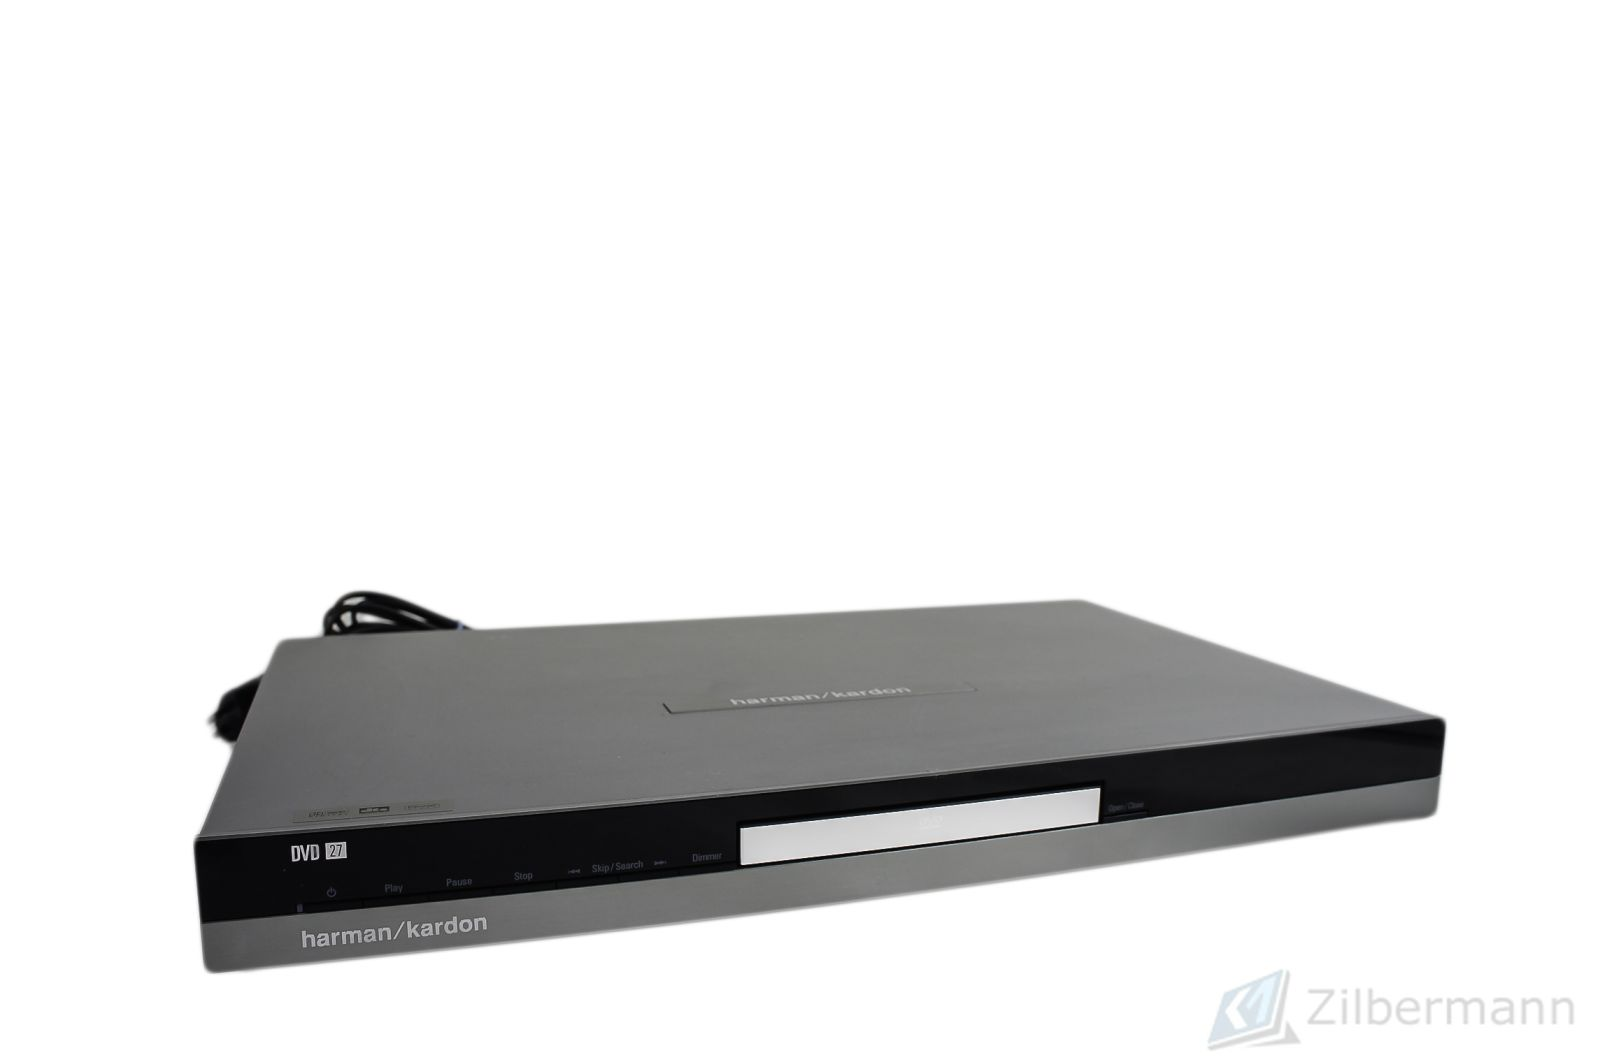 Harman_Kardon_DVD_27_DVD_Player_03